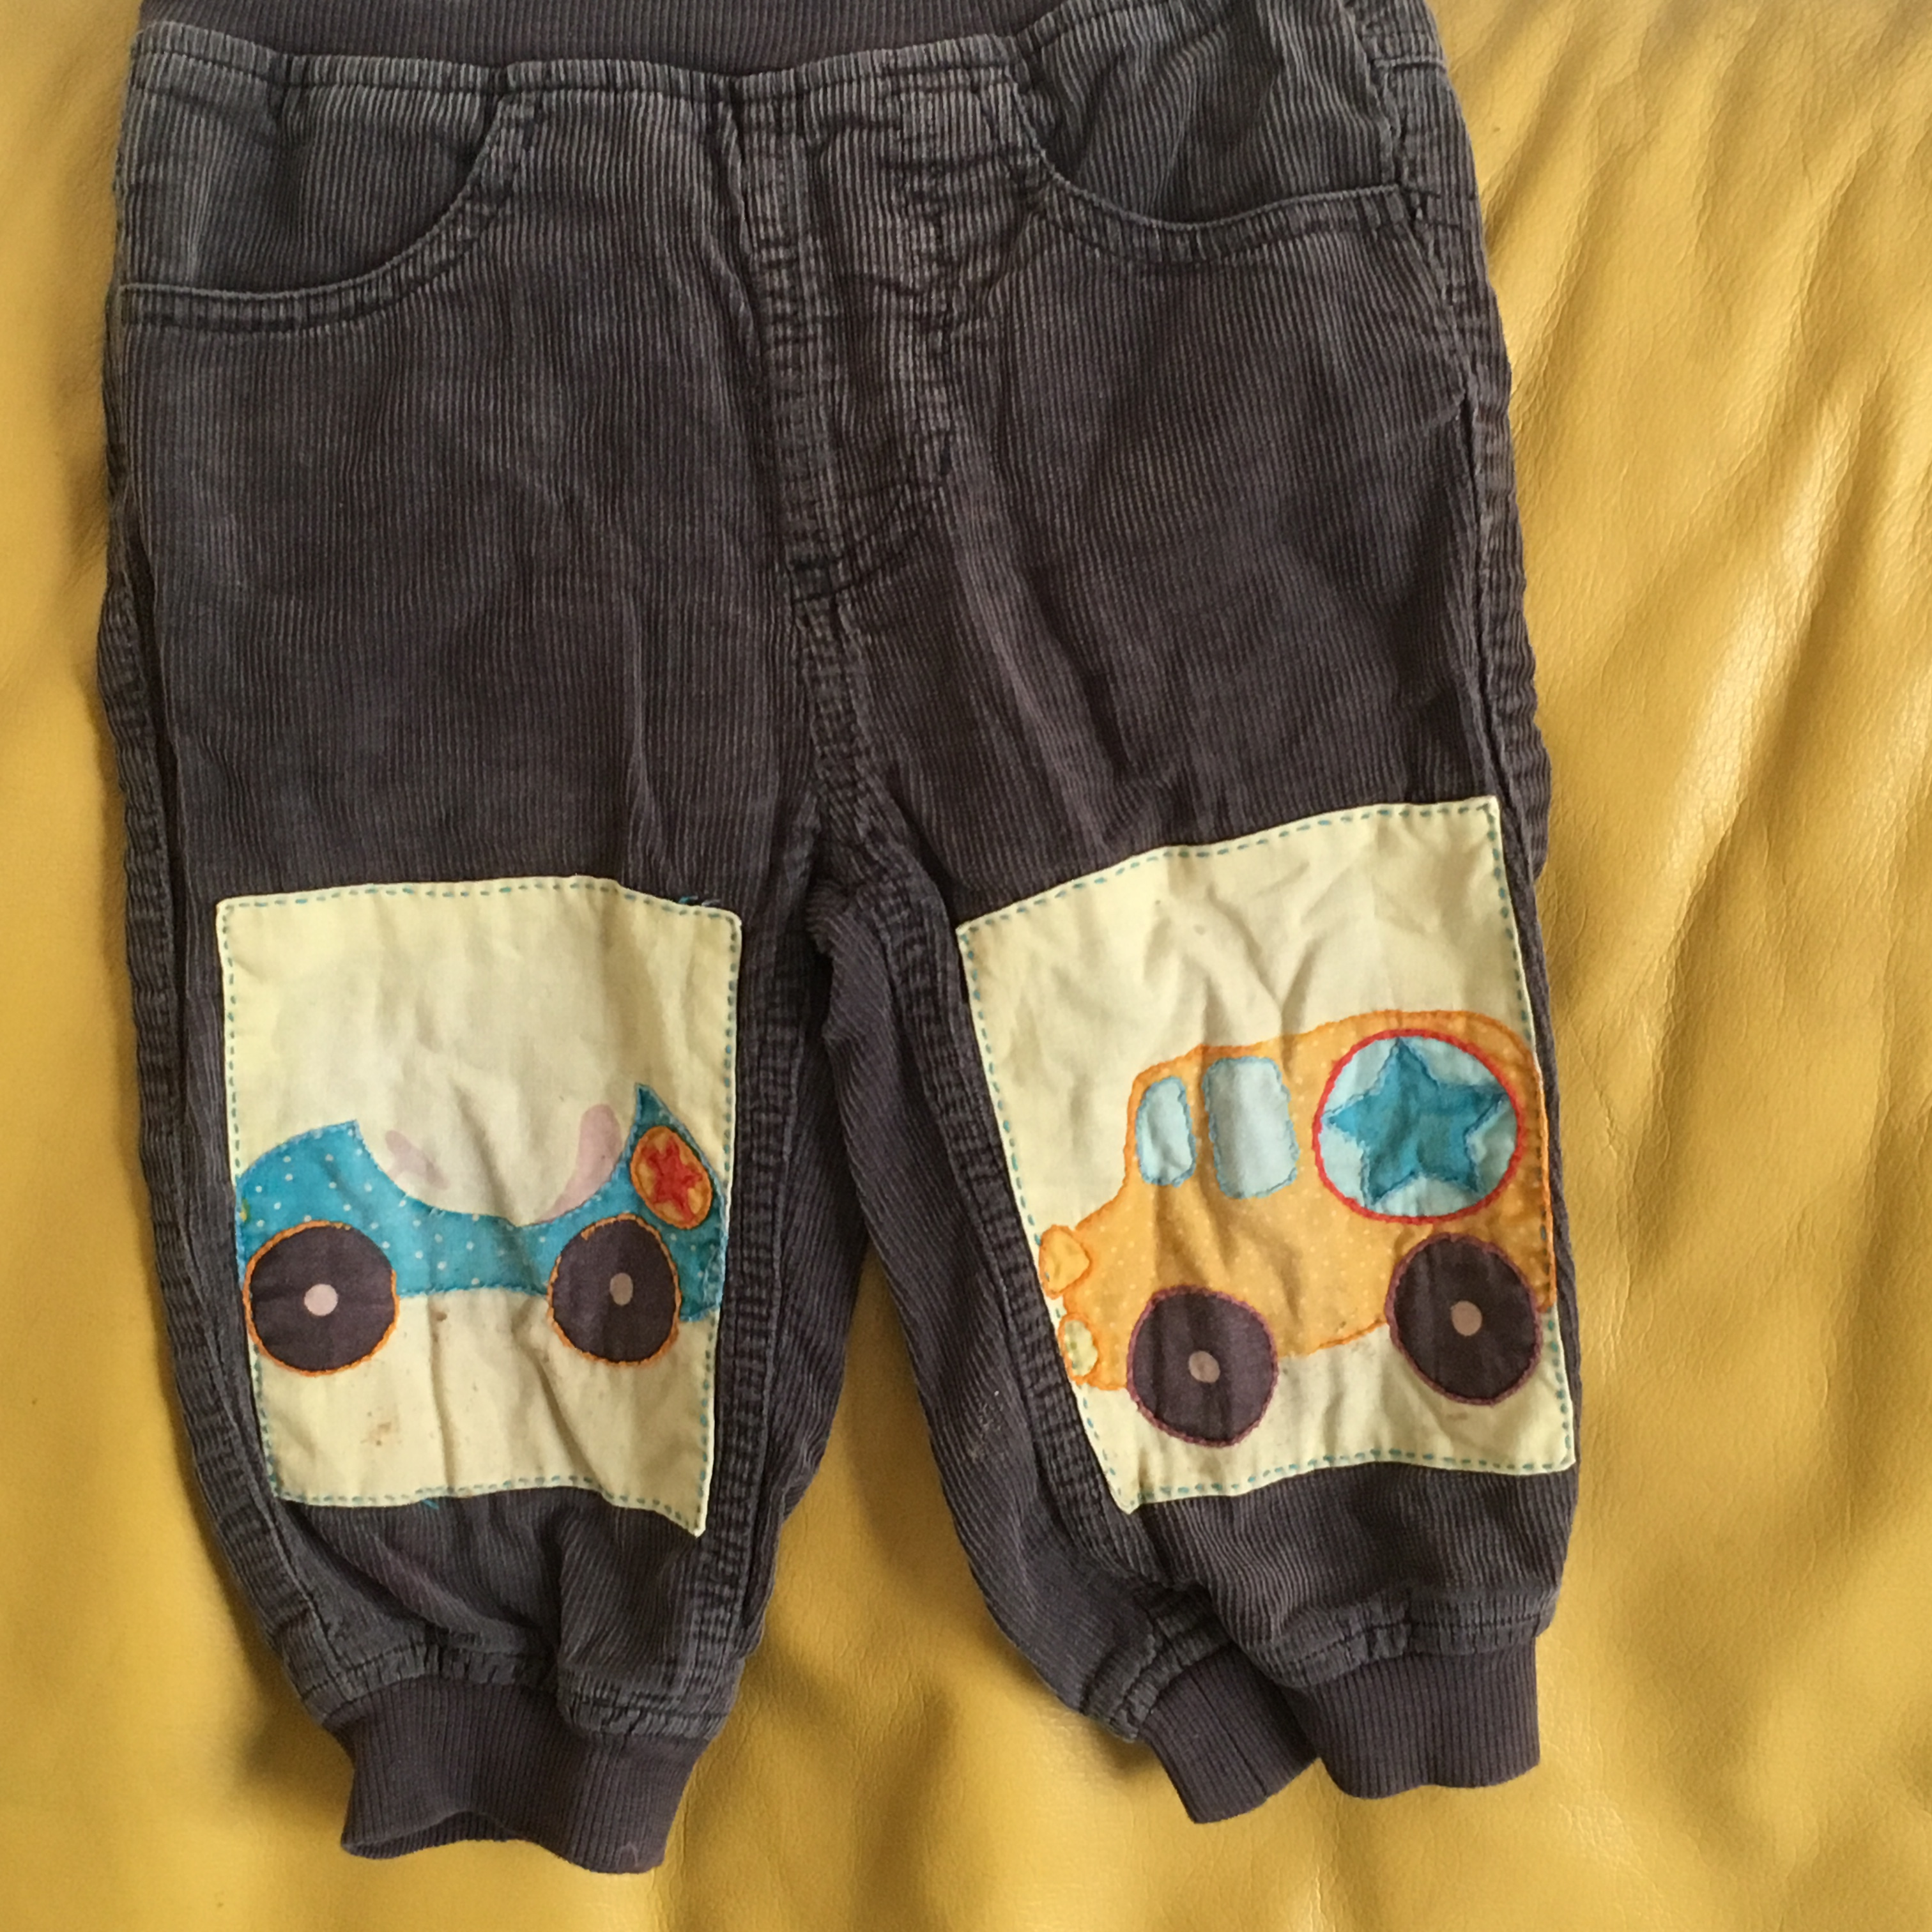 Hand stitched vehicle patches on children's trousers